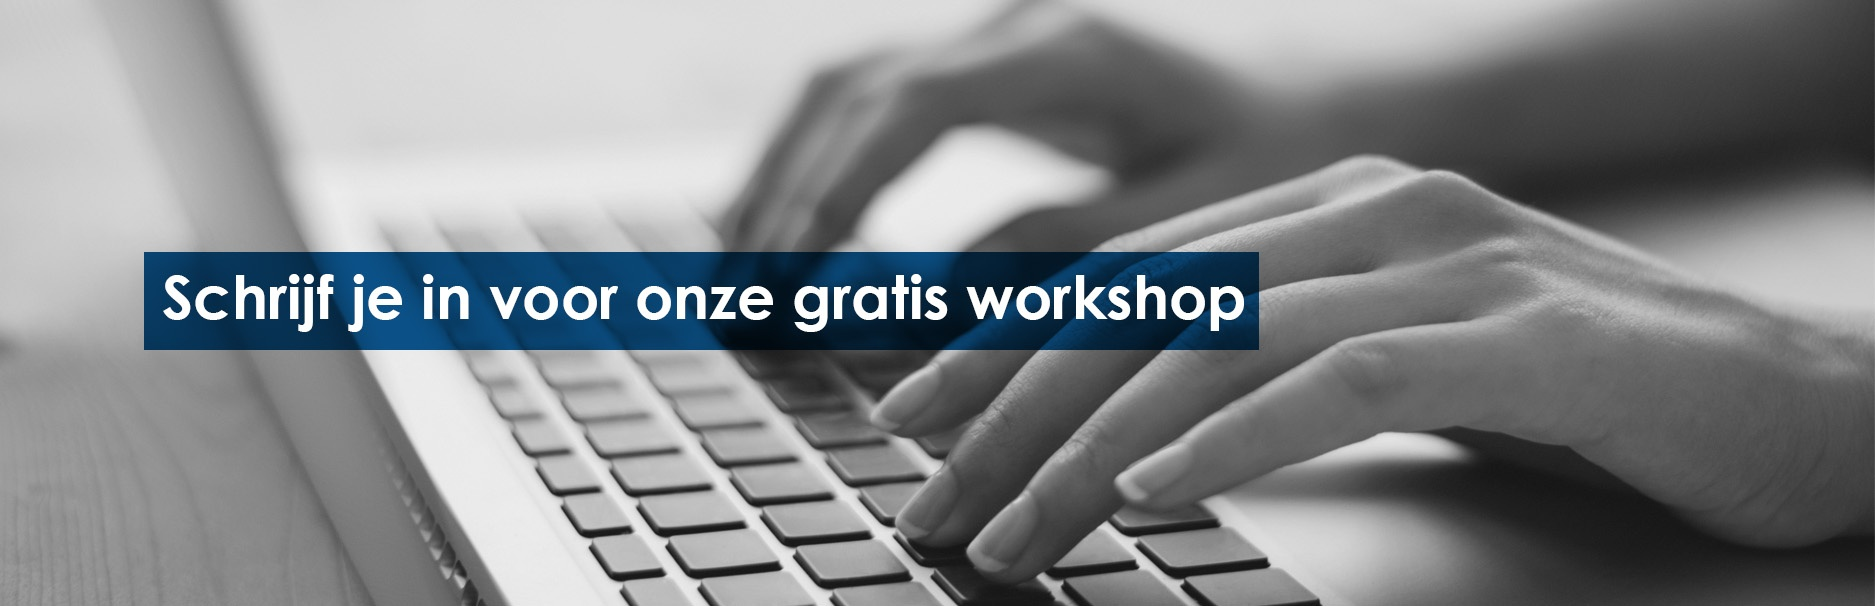 Gratis workshop banner.jpg